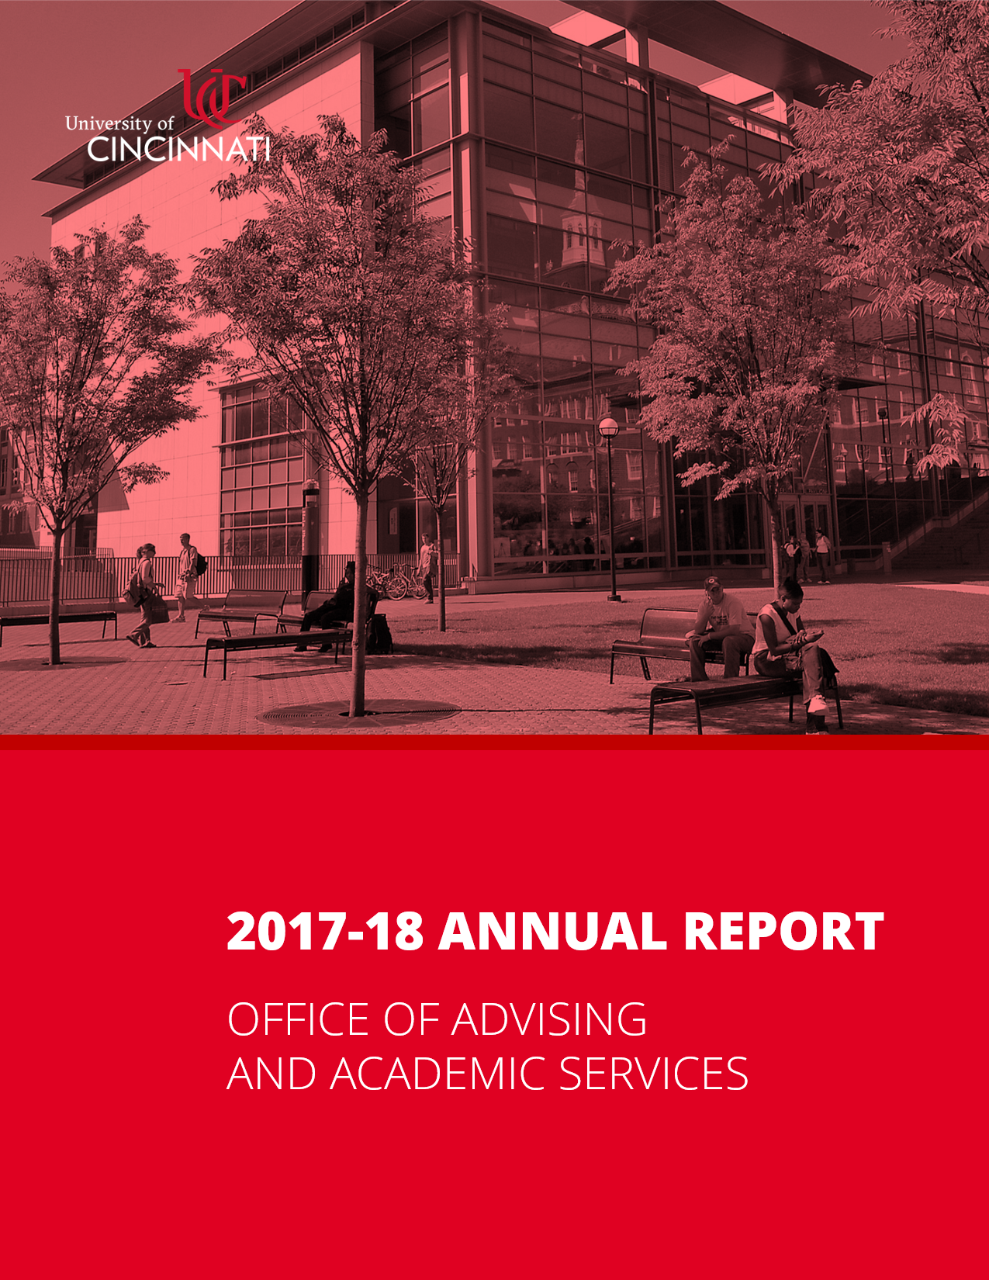 2017-18 Annual Report - Office of Advising & Academic Services - Click to Download